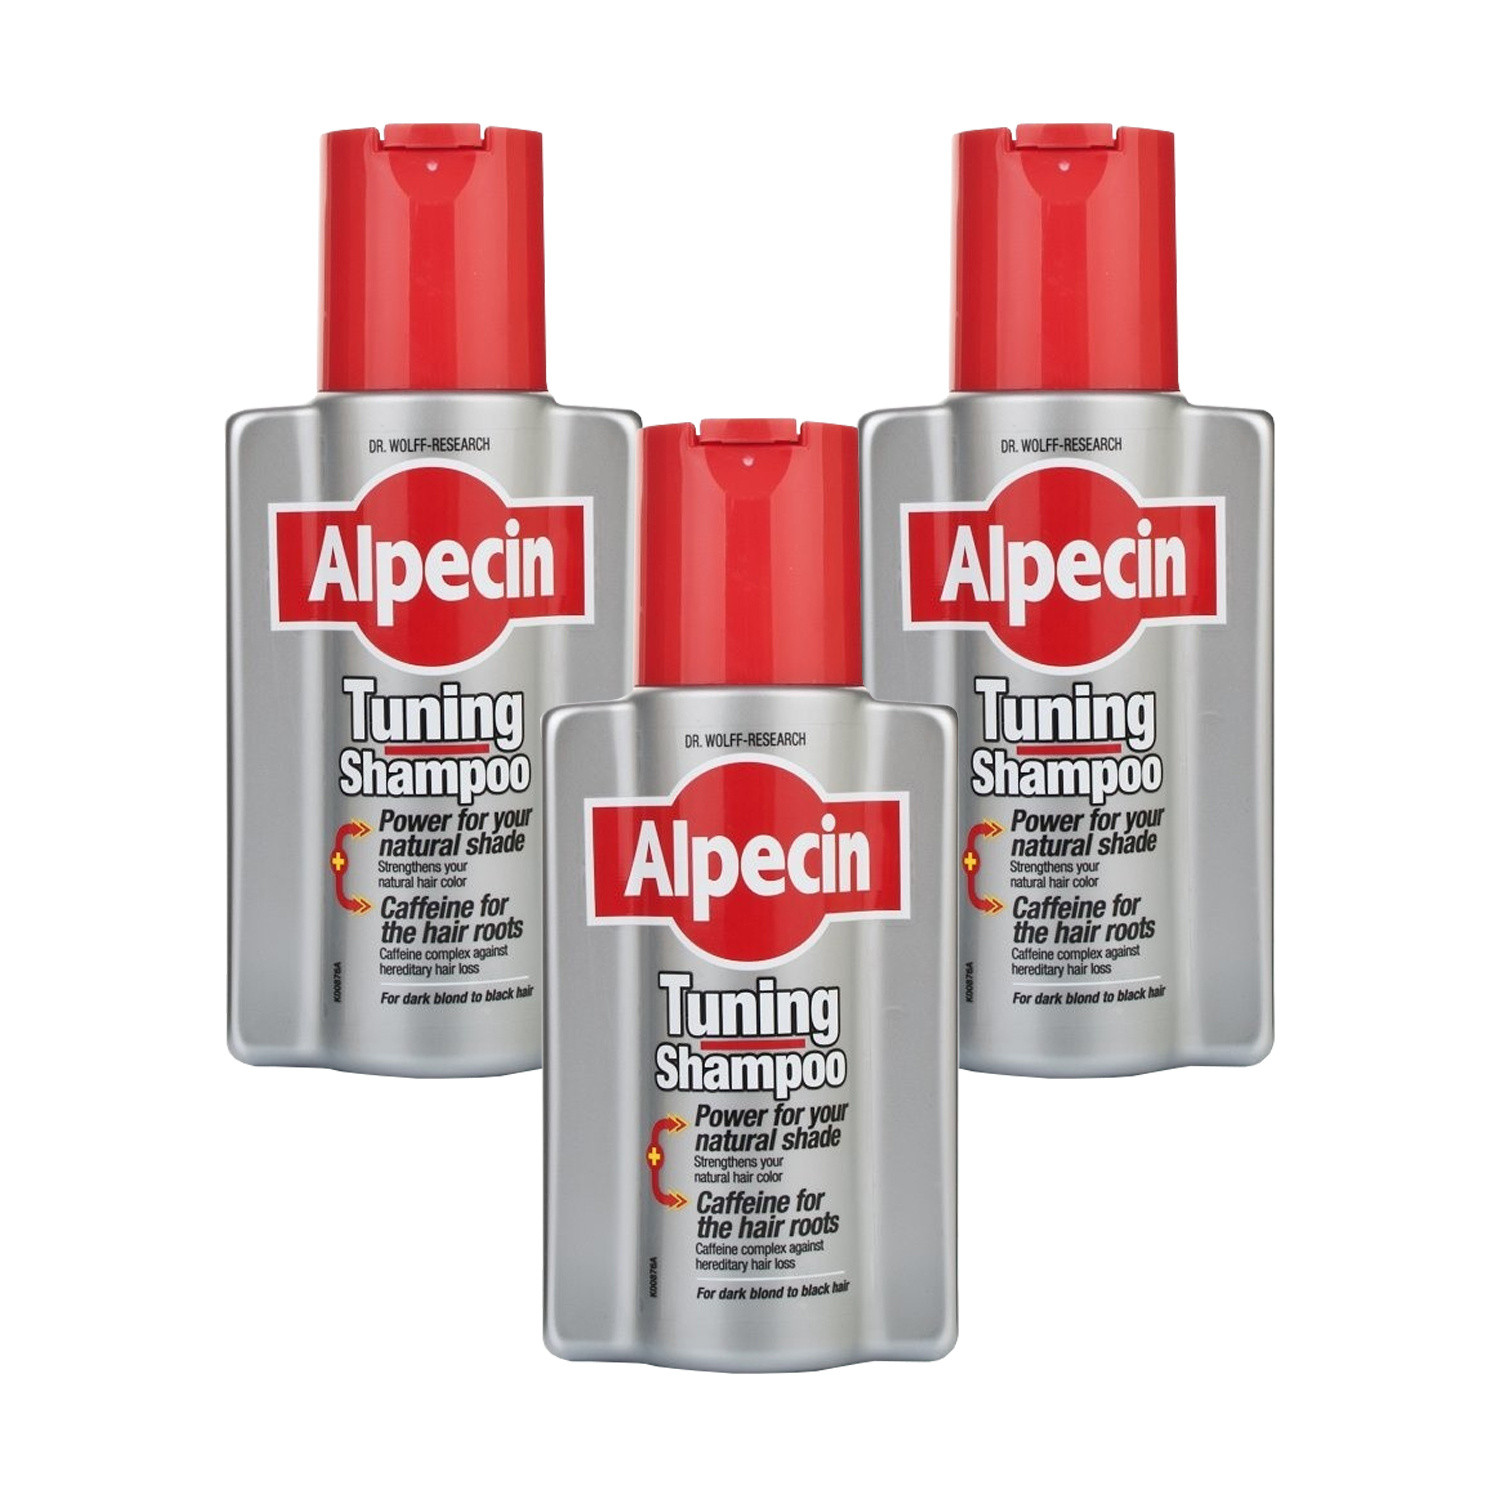 Alpecin Tuning Shampoo 200ml  Triple pack